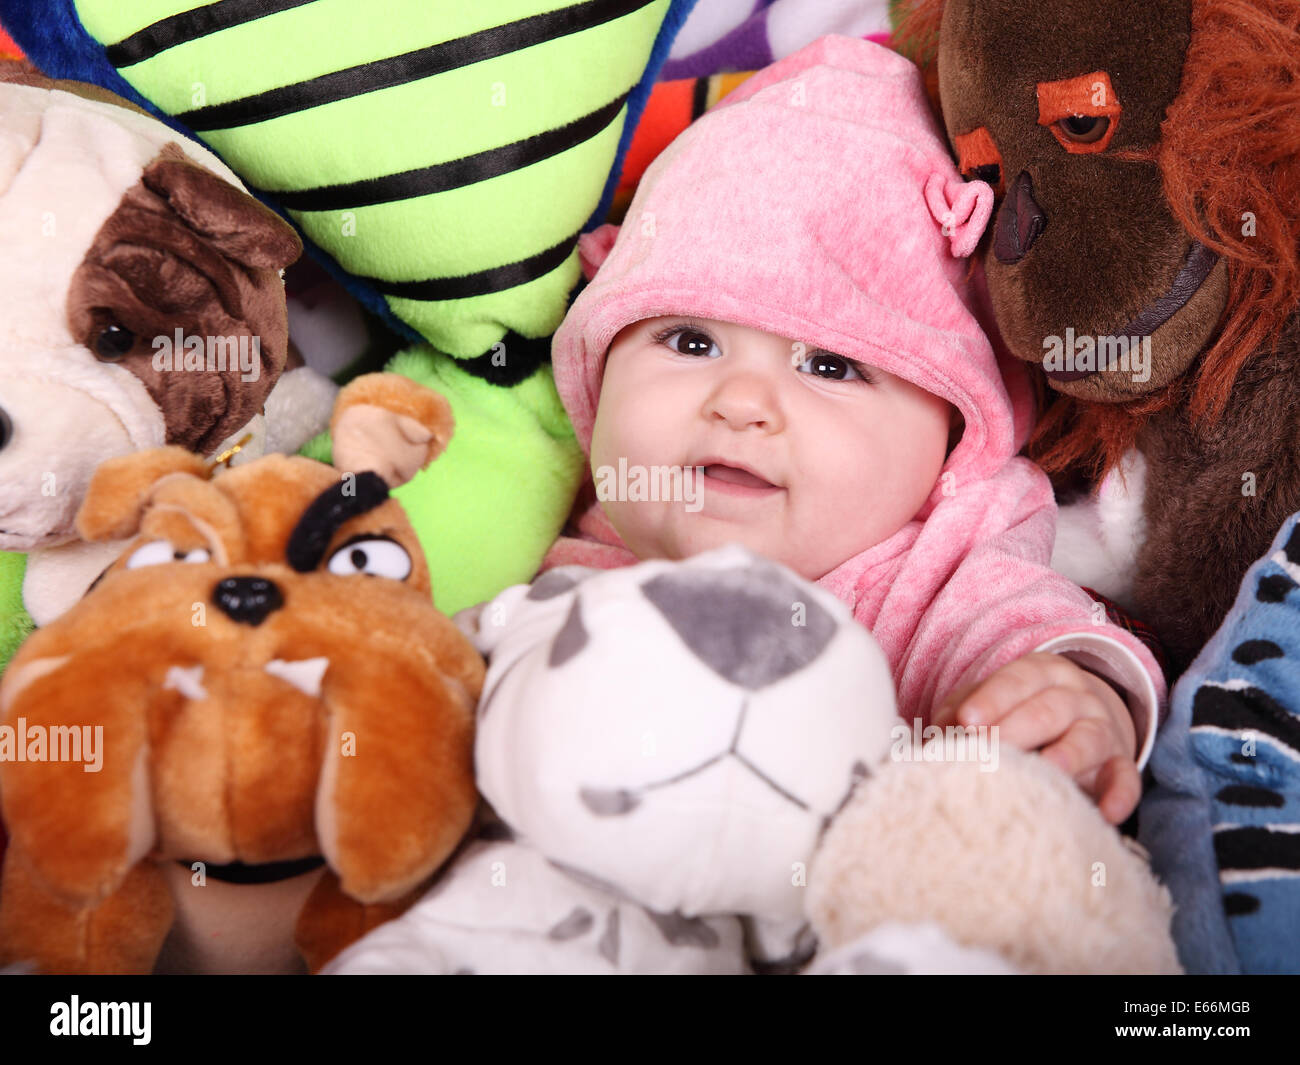 A baby girl between a lot of teddies - Stock Image